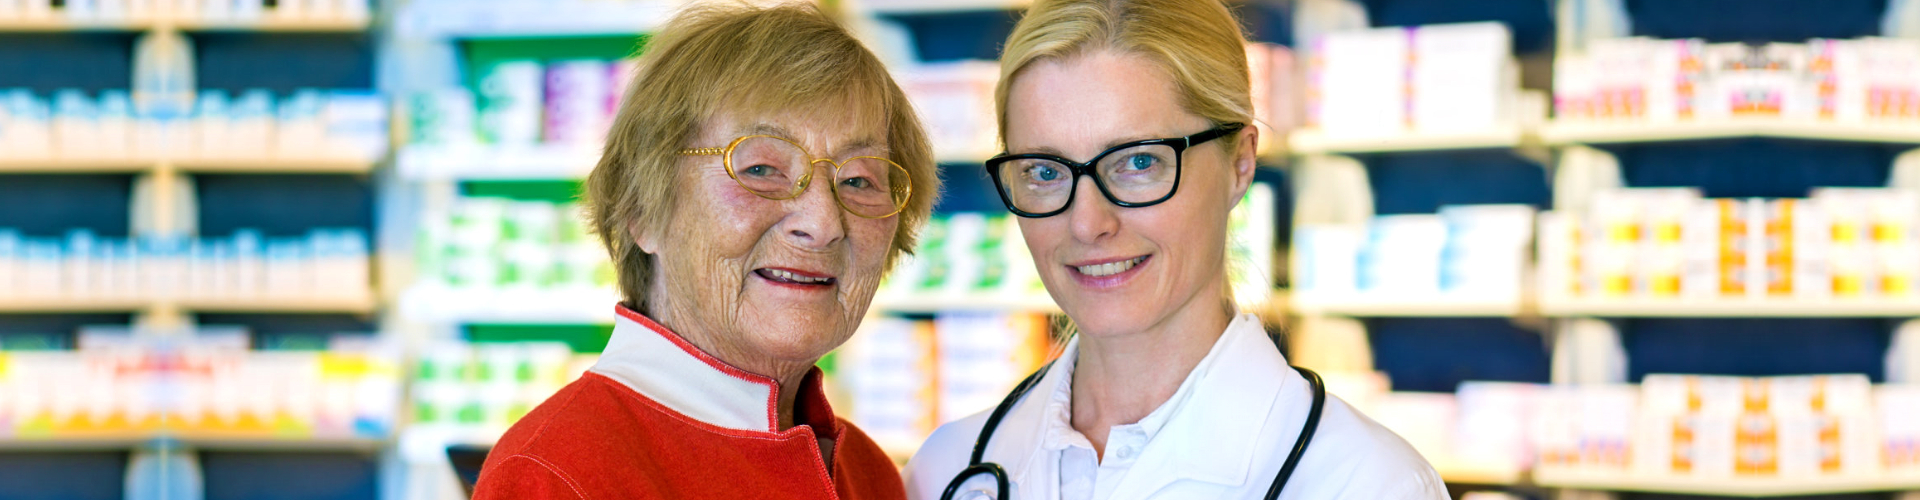 happy older women holding hands with smiling young female doctor